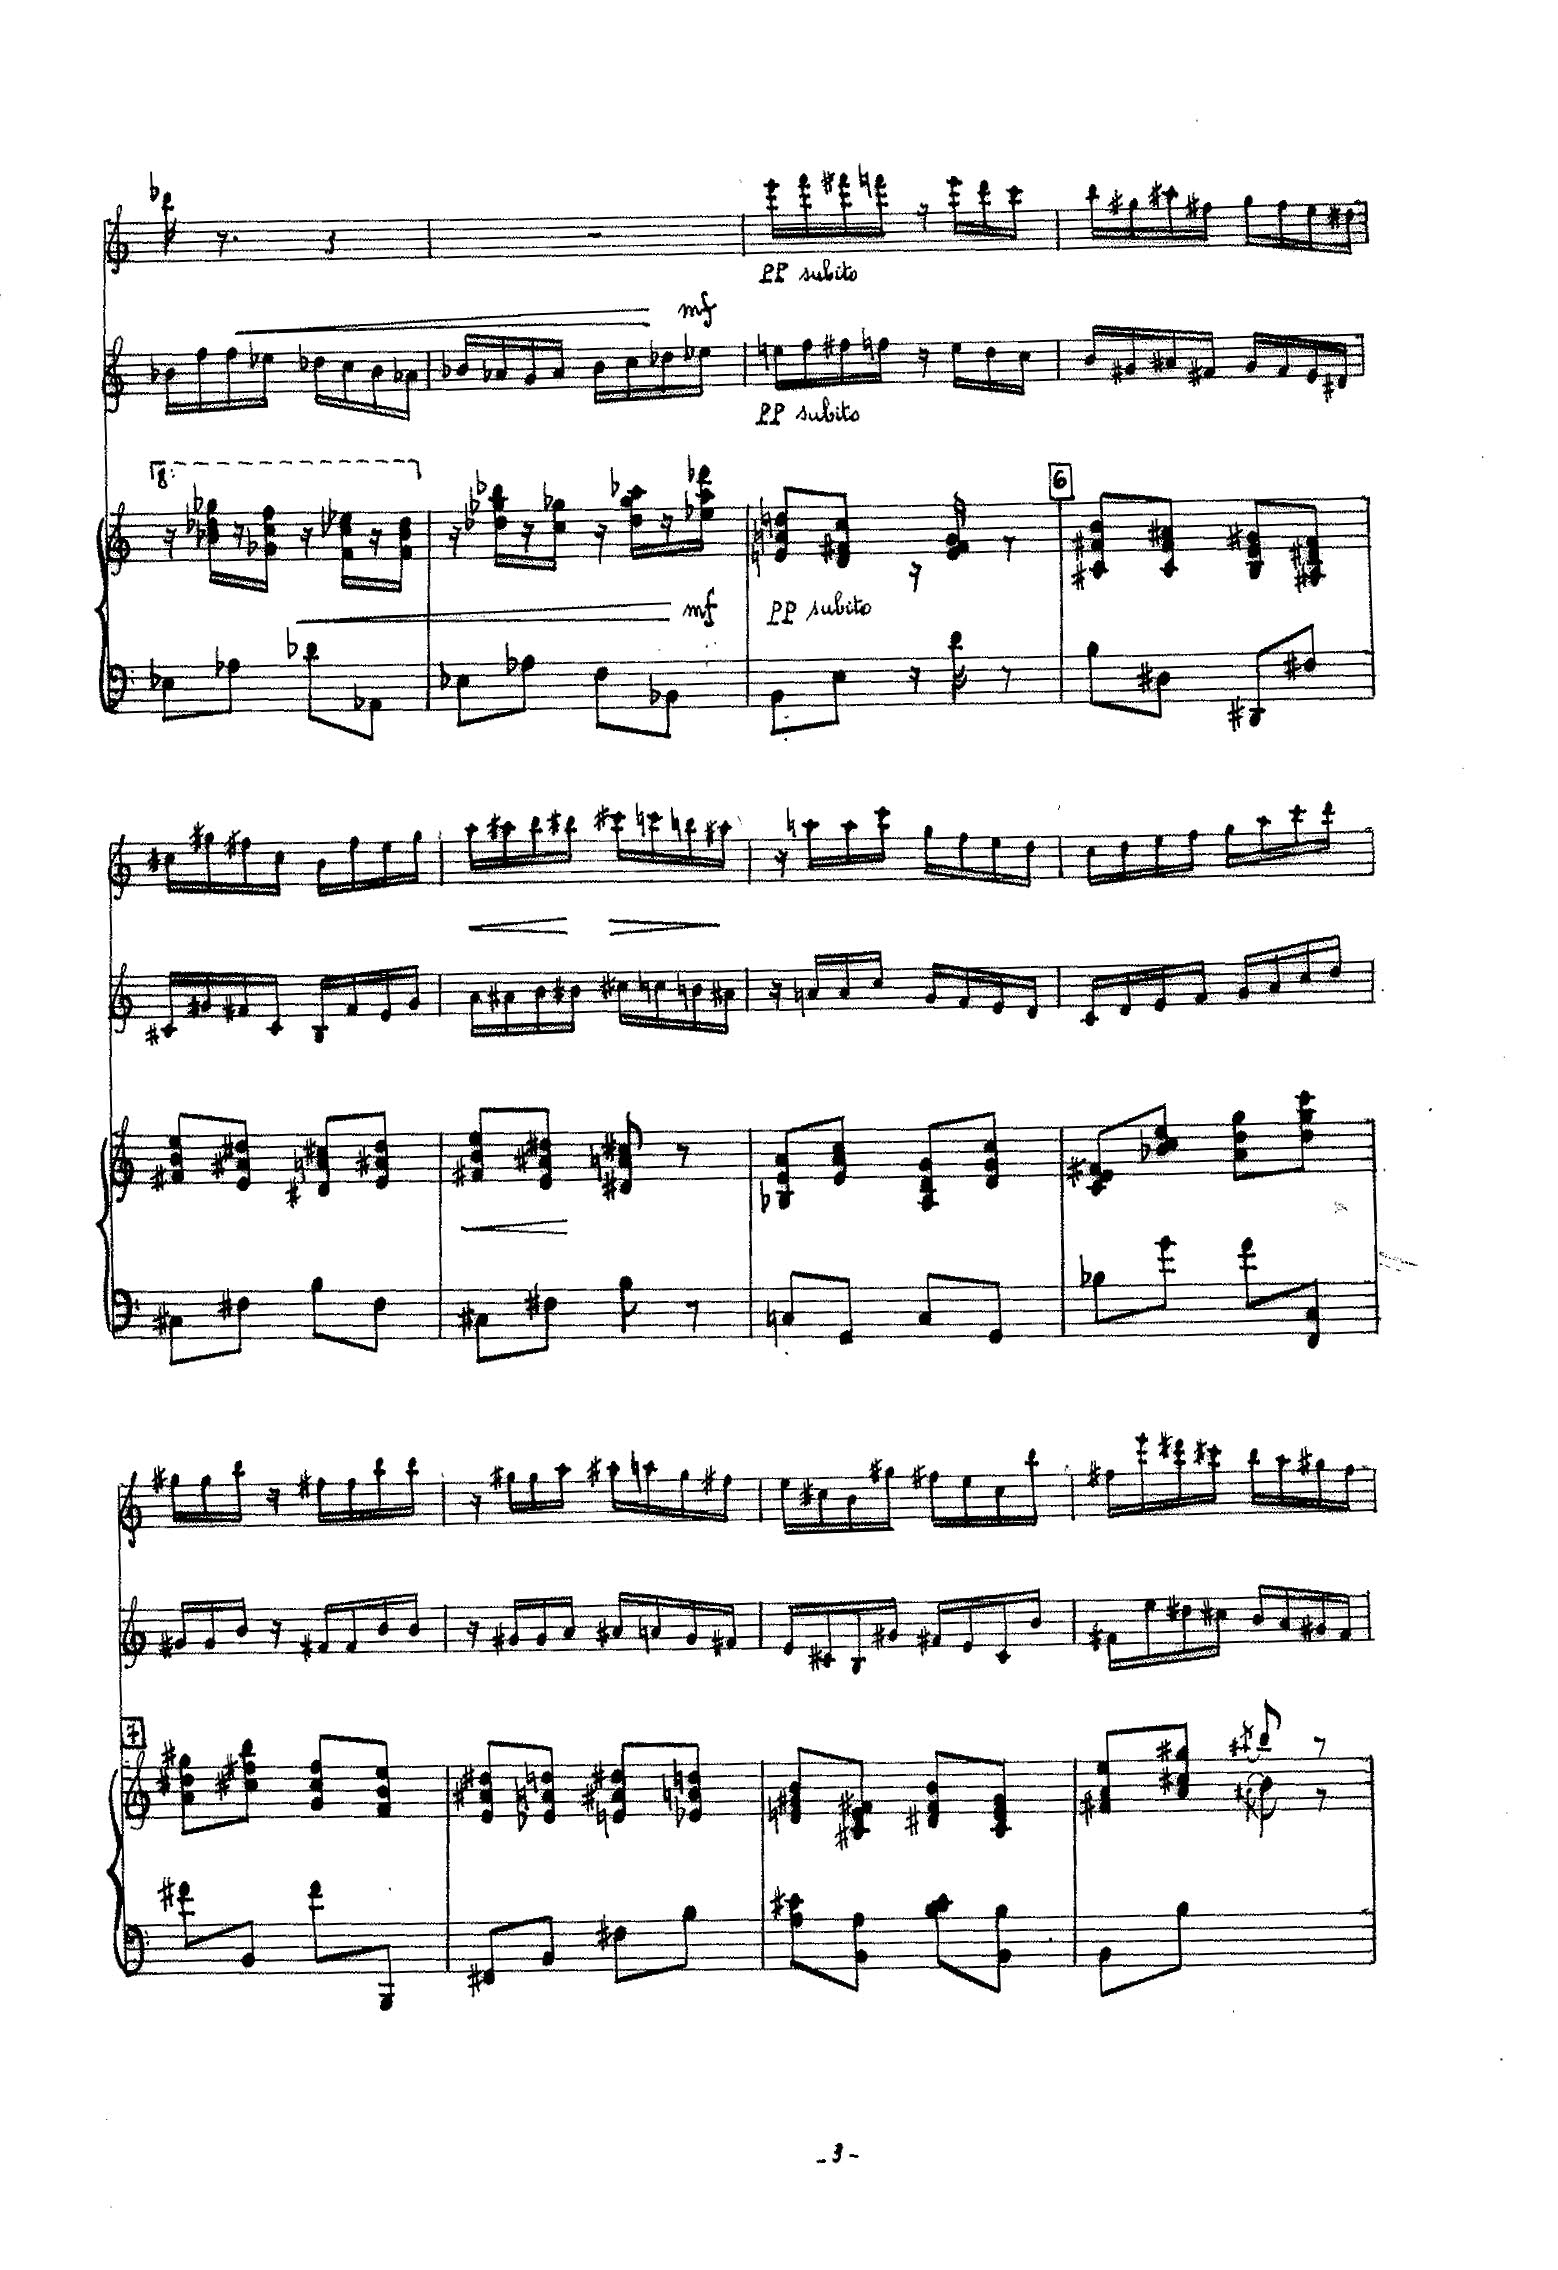 Dubois, Pierre Max - Suite for Violin, Clarinet and Piano